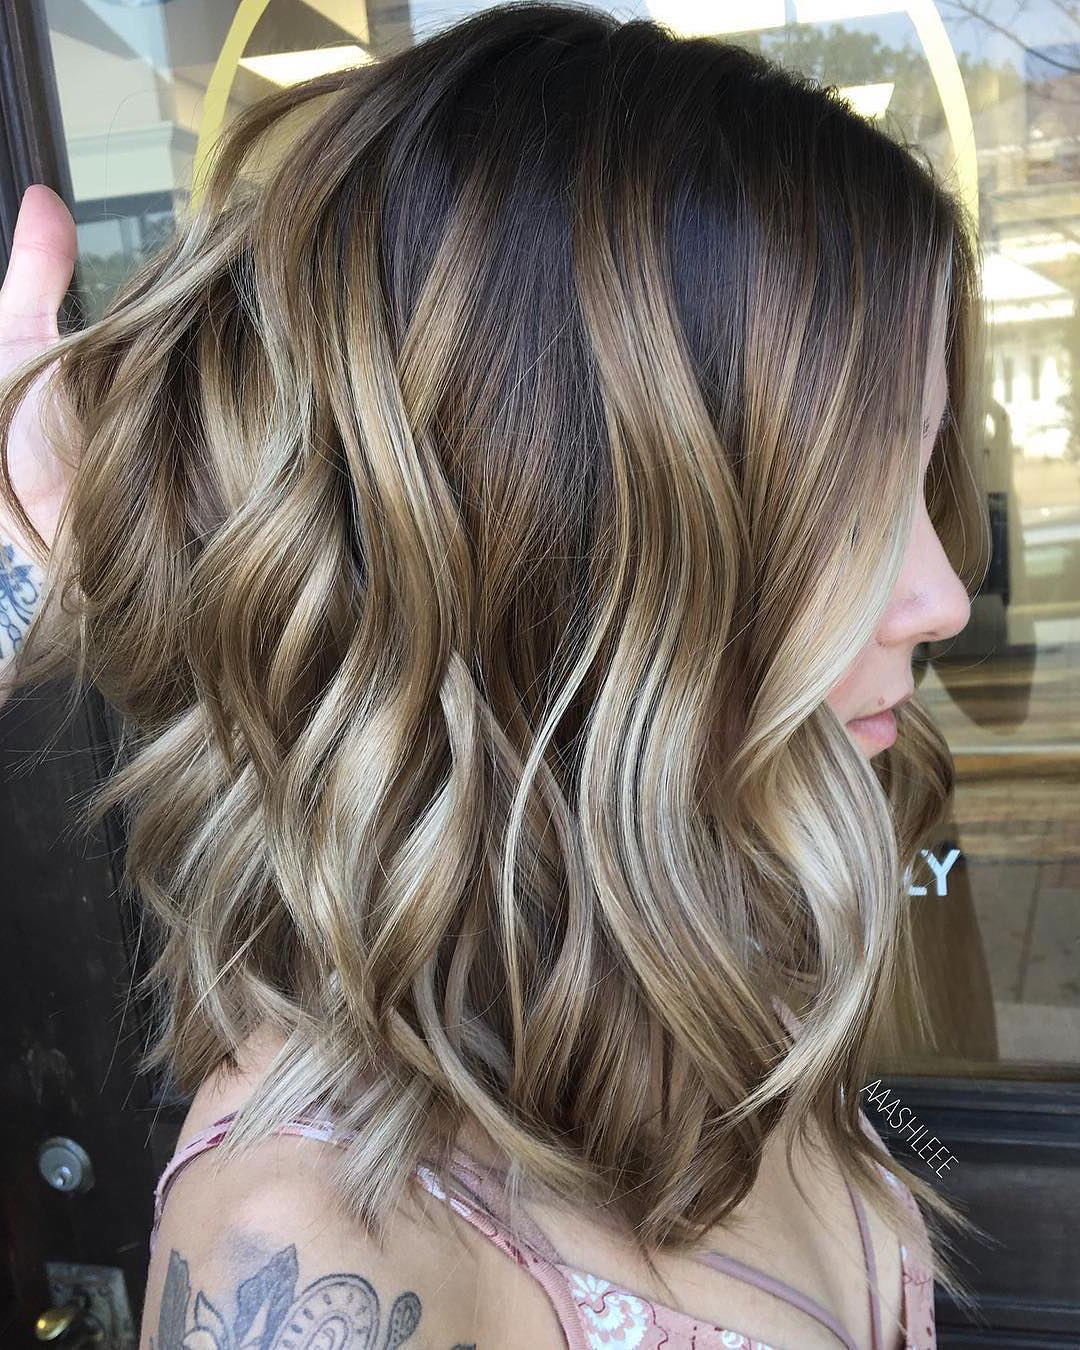 Well Known Brown And Blonde Feathers Hairstyles Pertaining To 10 Ombre Balayage Hairstyles For Medium Length Hair, Hair Color  (View 19 of 20)